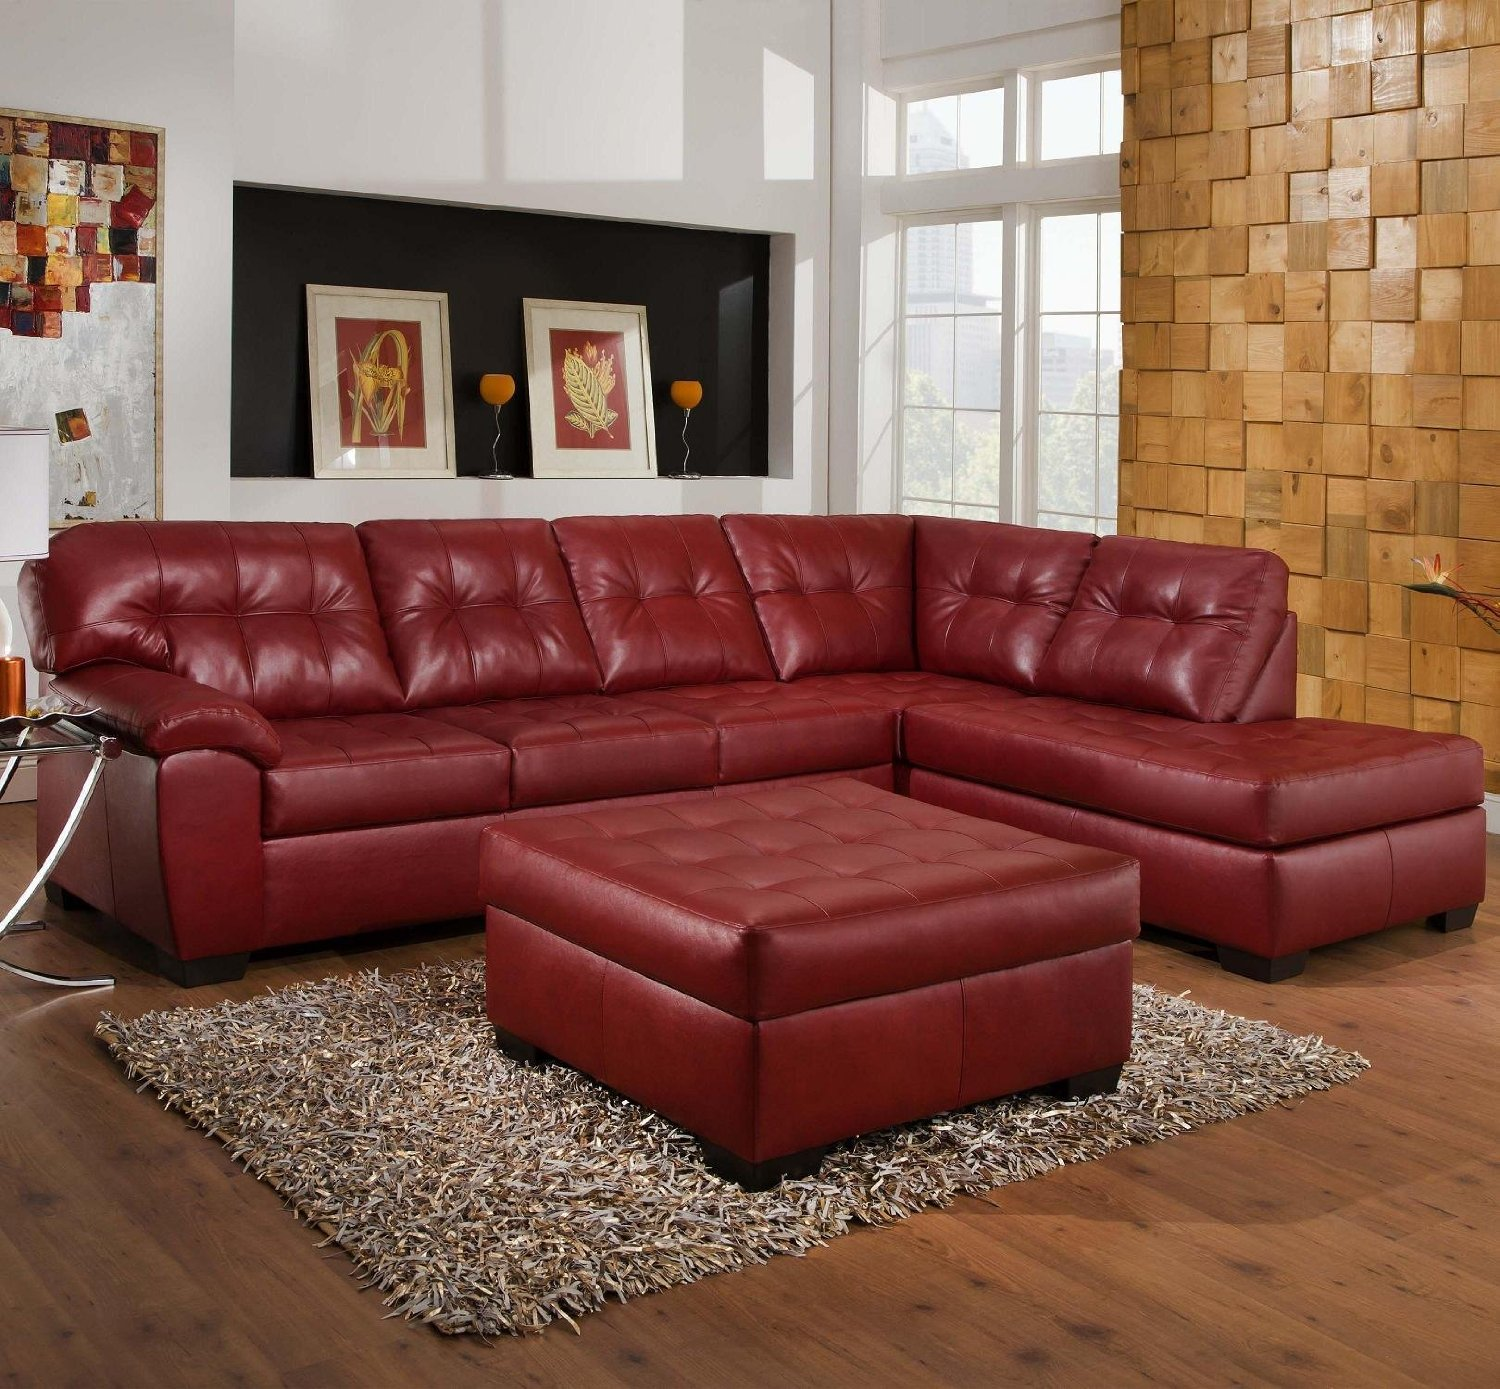 Cute Couch Covers with Cushions for Sectionals  for Living Room: Captivating Couch Covers With Cushions For Sectionals  For Living Room With Furniture Covers For Sectionals